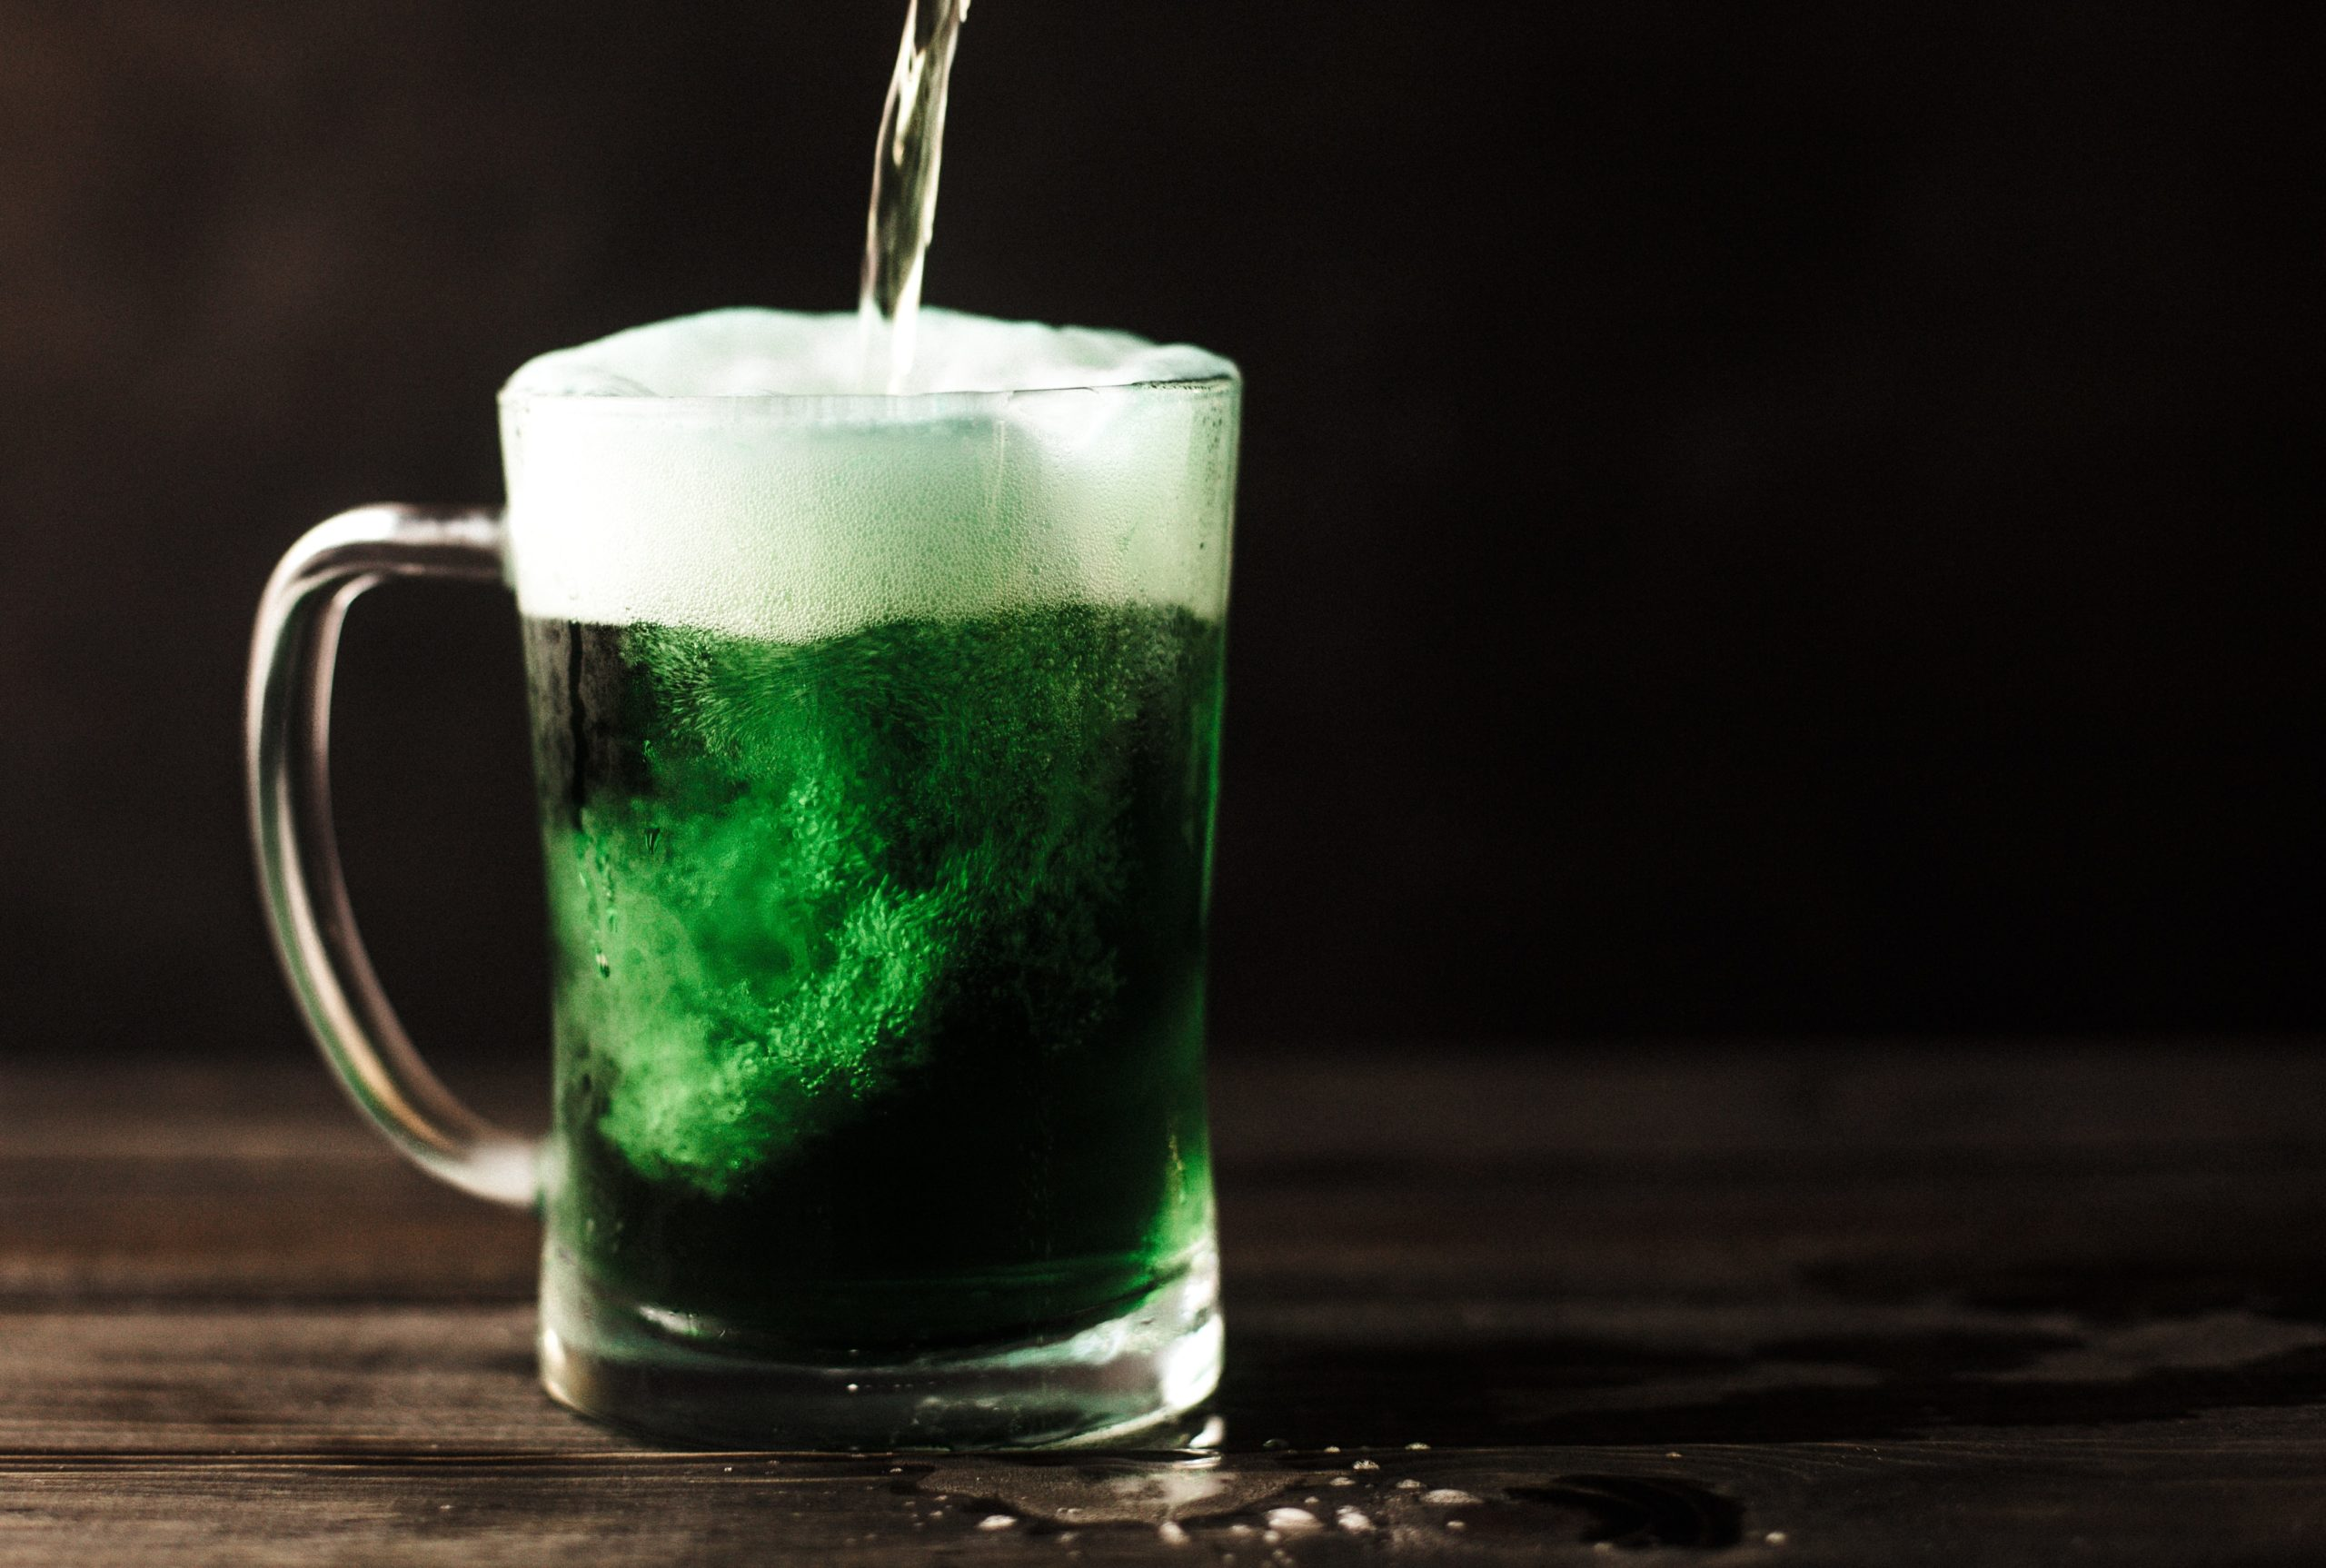 A mug of green beer being poured.